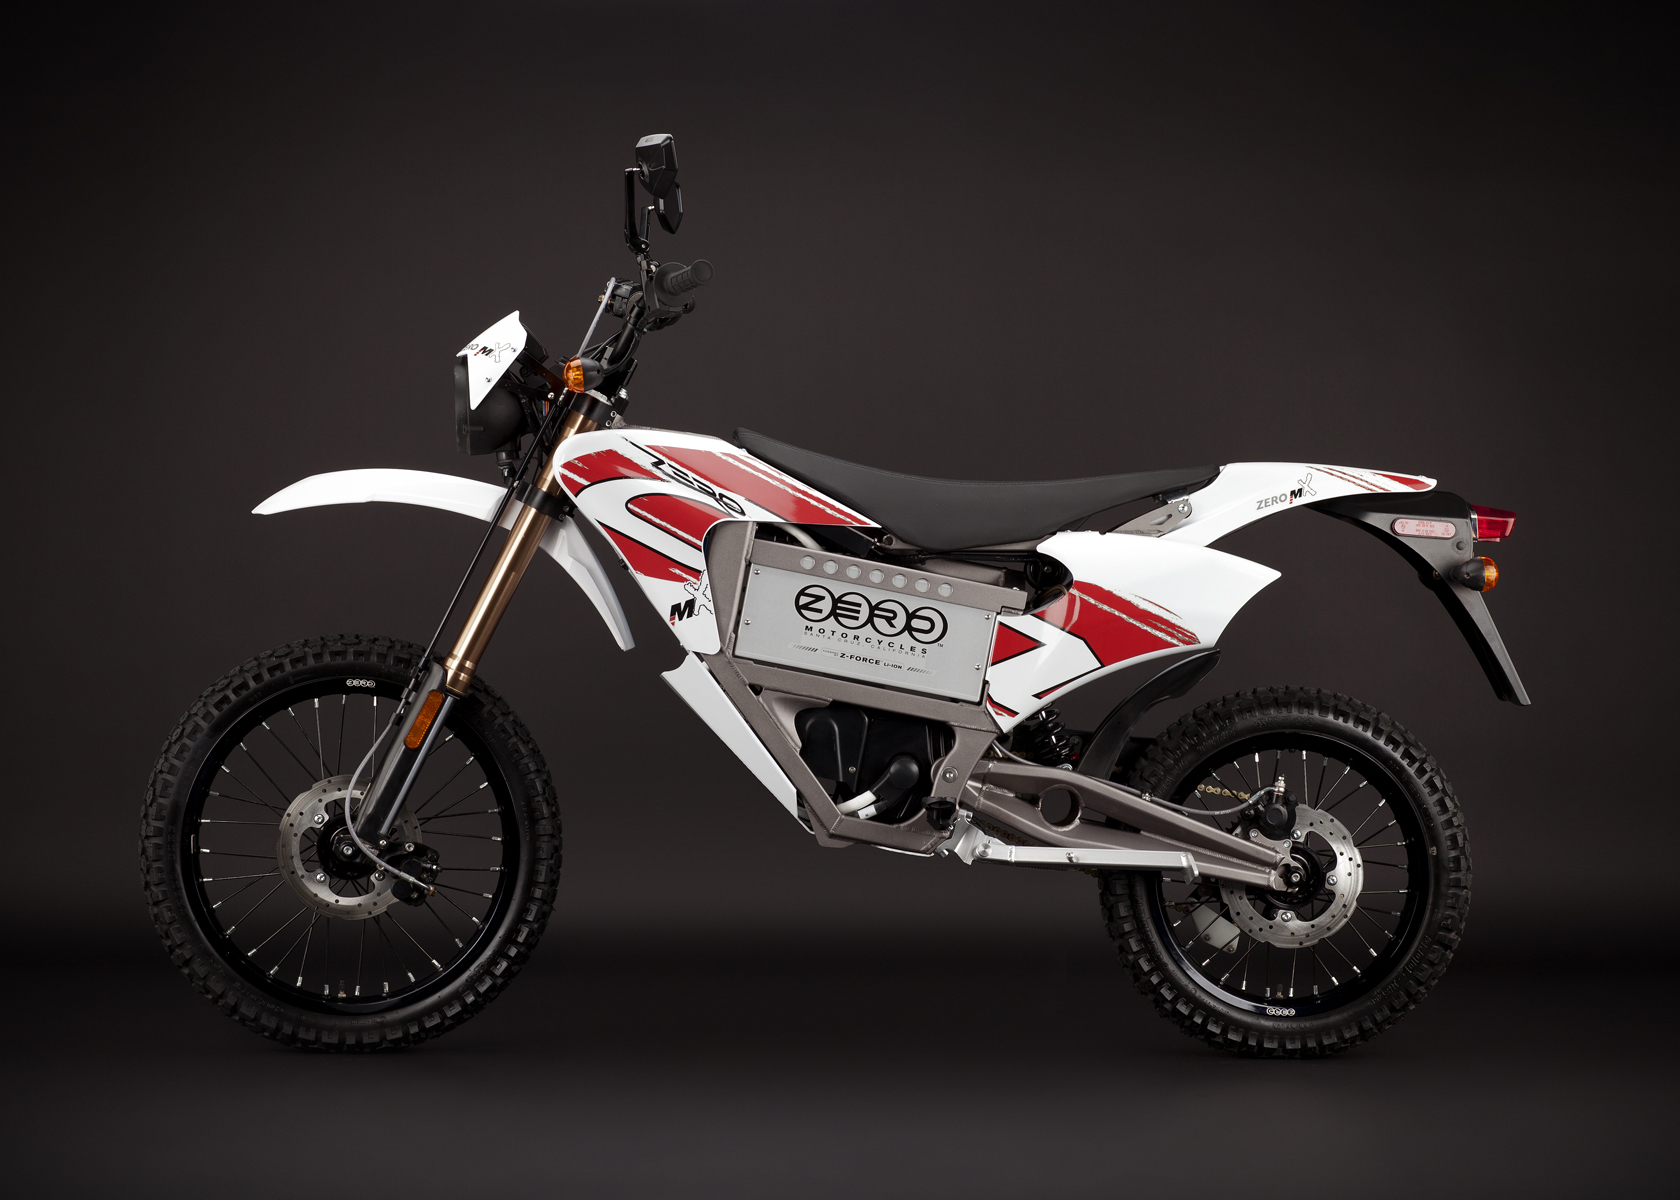 '.2011 Zero MX Electric Motorcycle: Profile Left, Street Legal Model.'